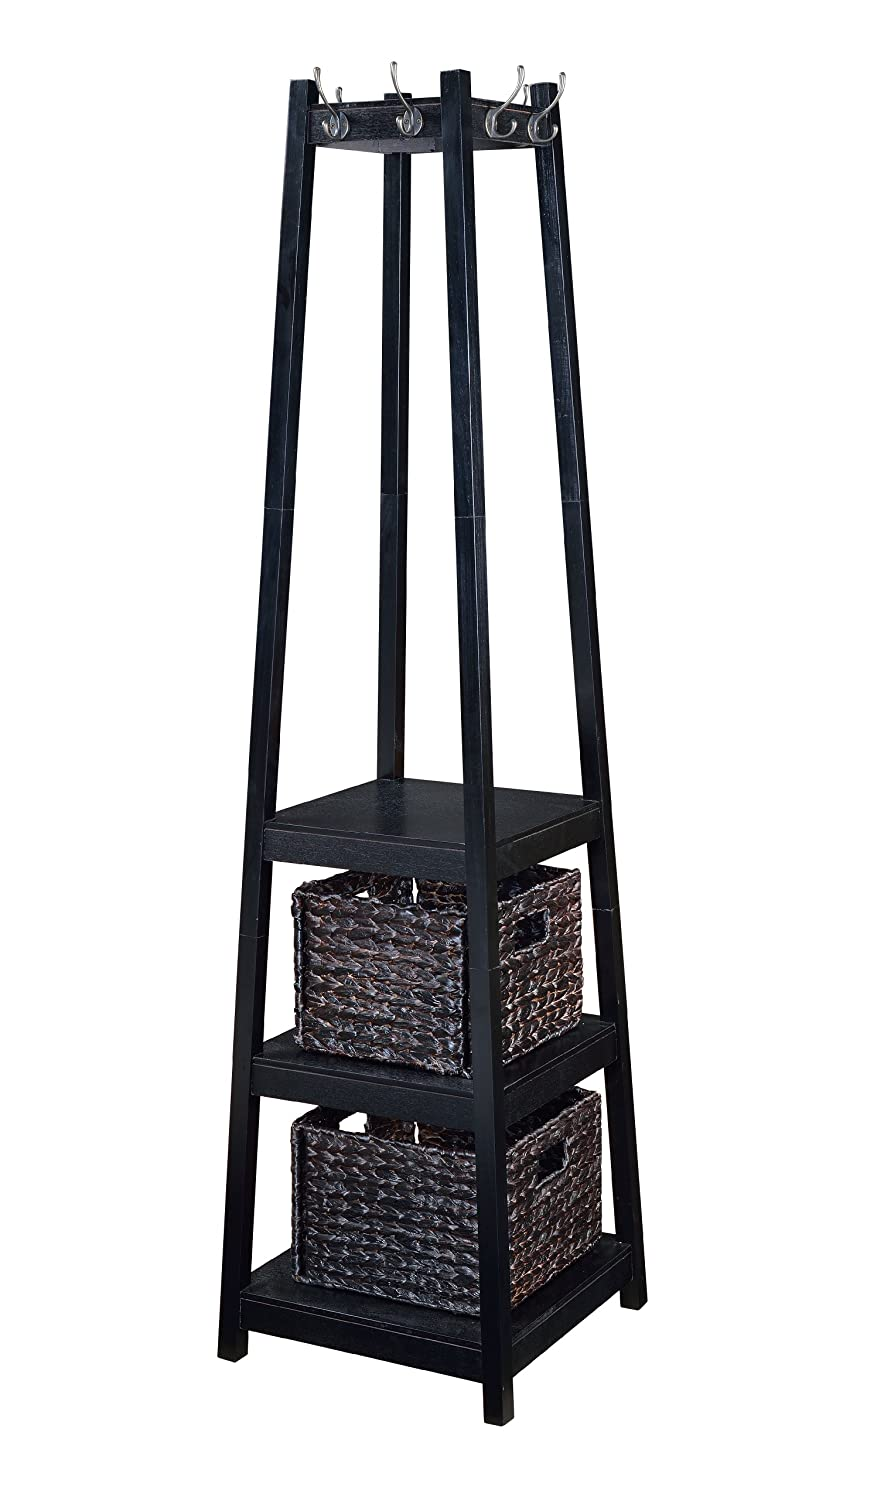 Ordinaire H2O Coat Rack Tower Free Standing With 2 Storage Baskets, 72 Inch,  Espresso: Amazon.ca: Home U0026 Kitchen